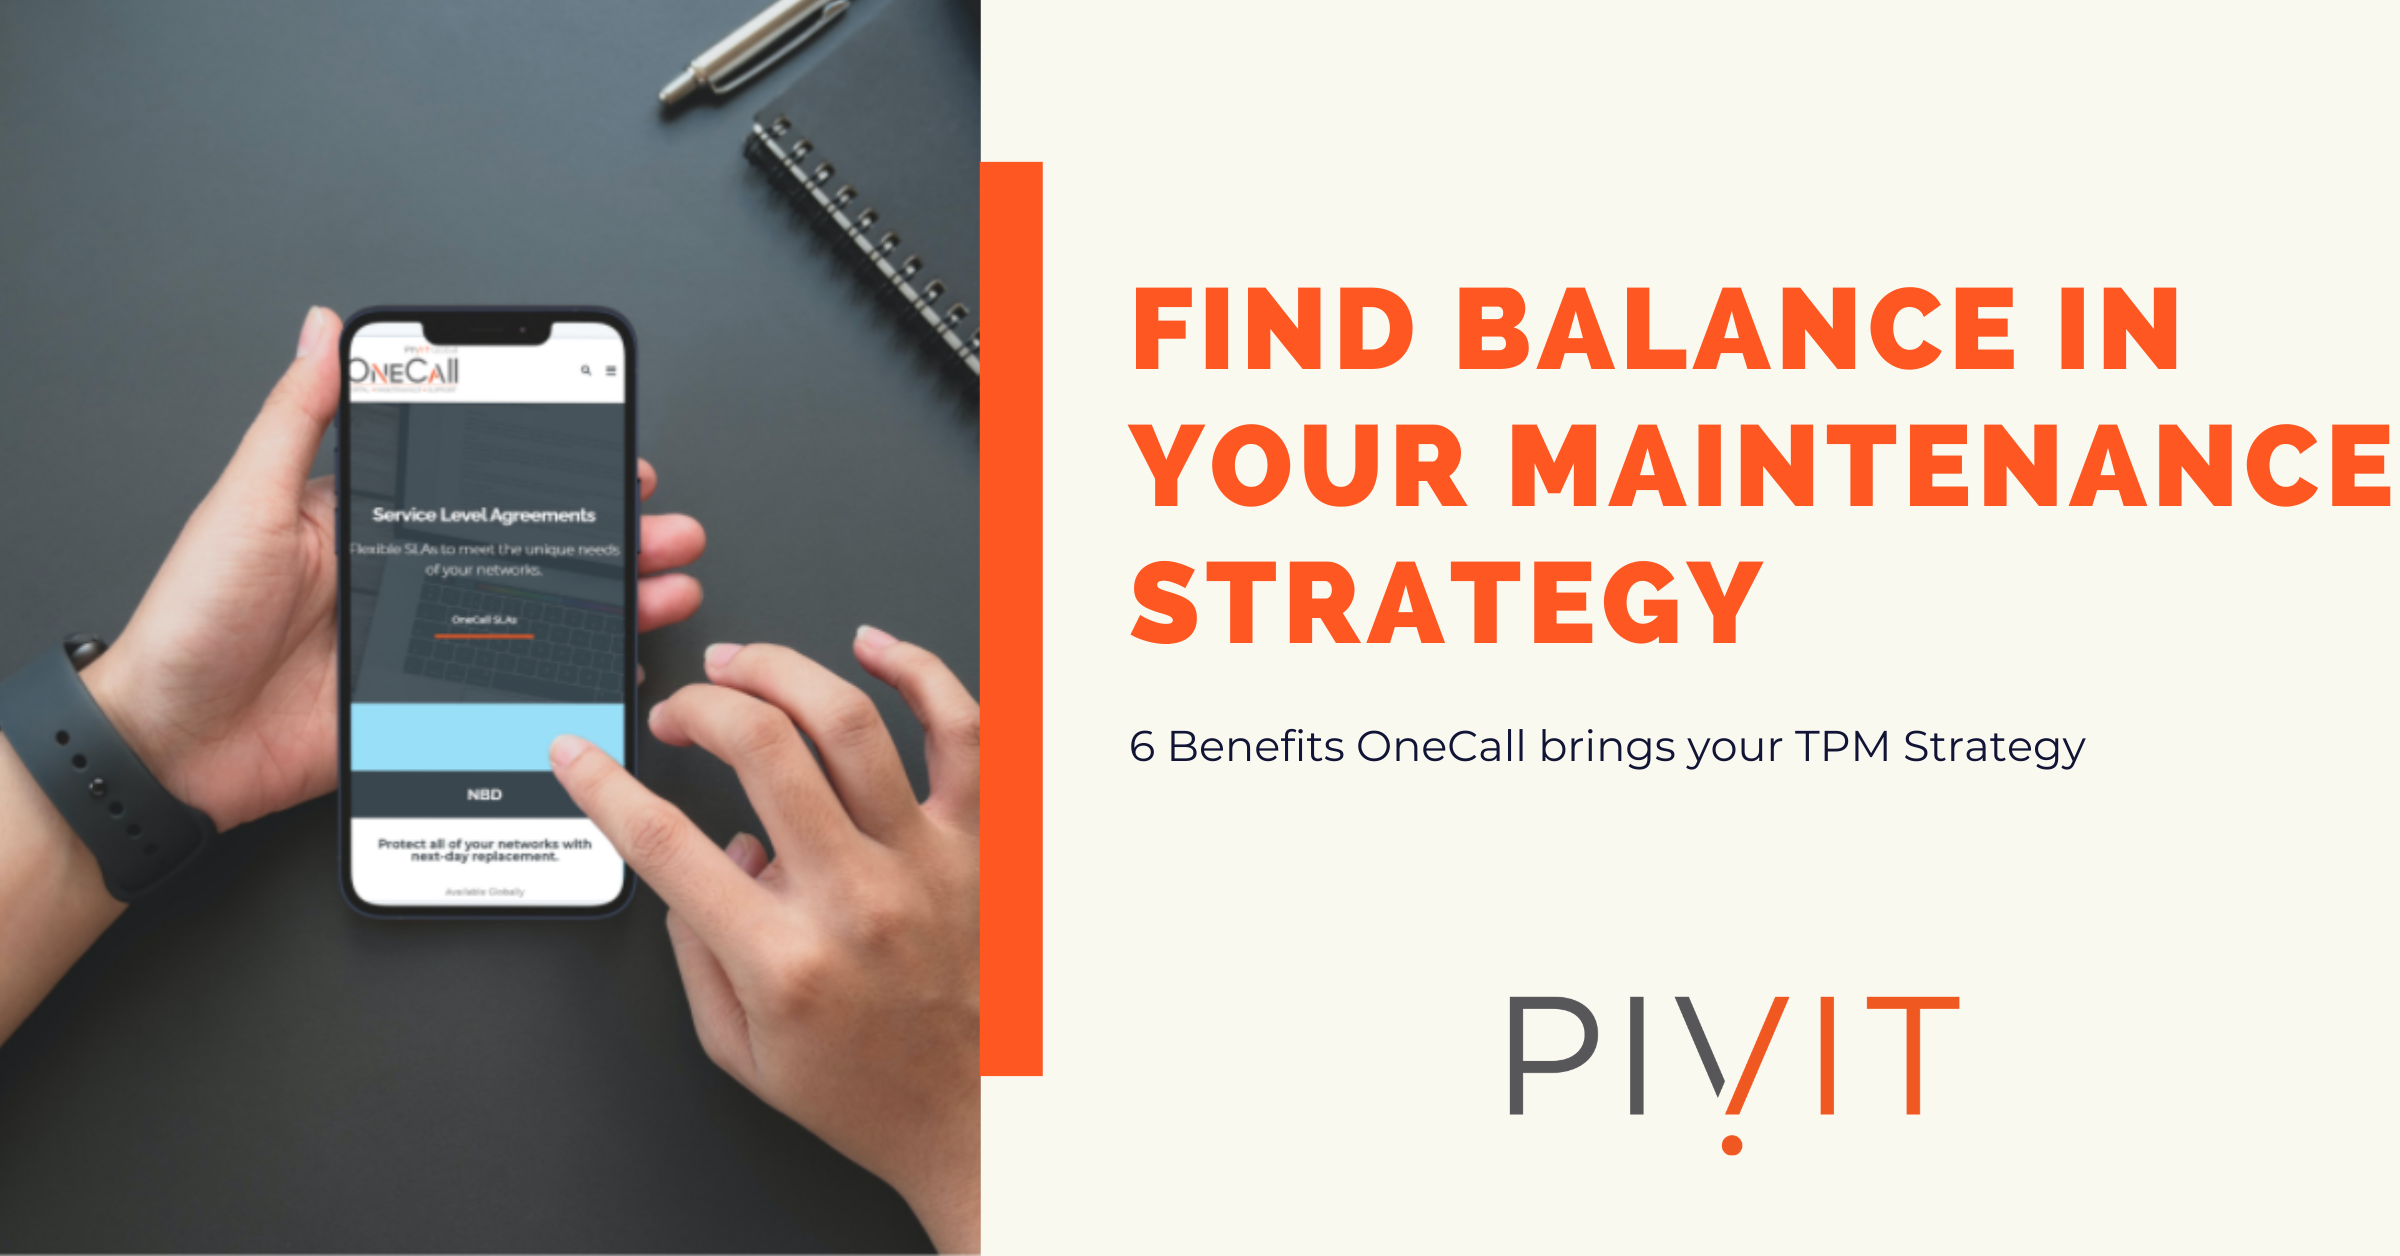 How to Find A Balanced IT Maintenance Strategy